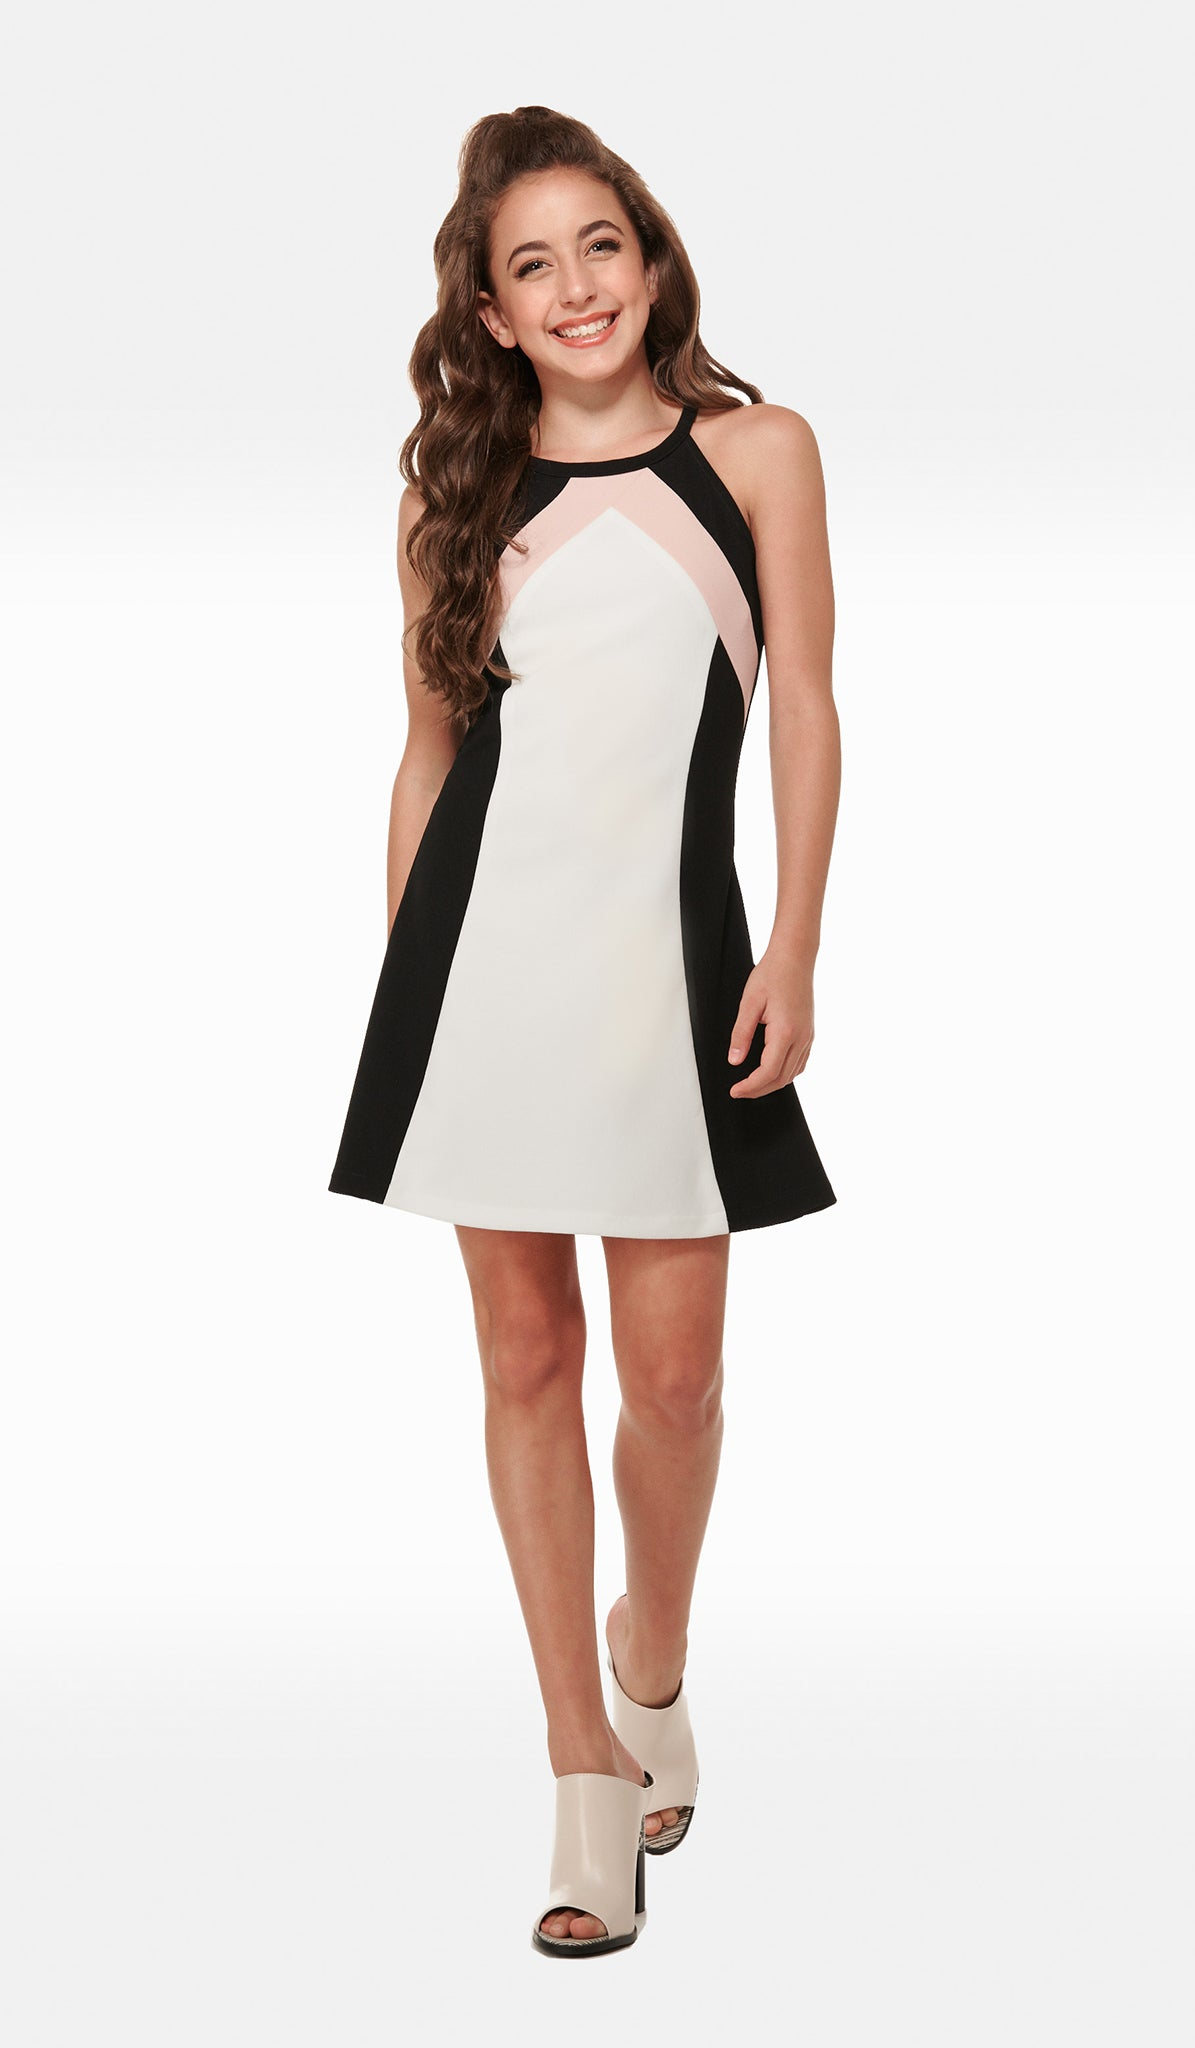 Modern Multi color block stretch crepe georgette dress with button back closure Sally Miller Hope Dress